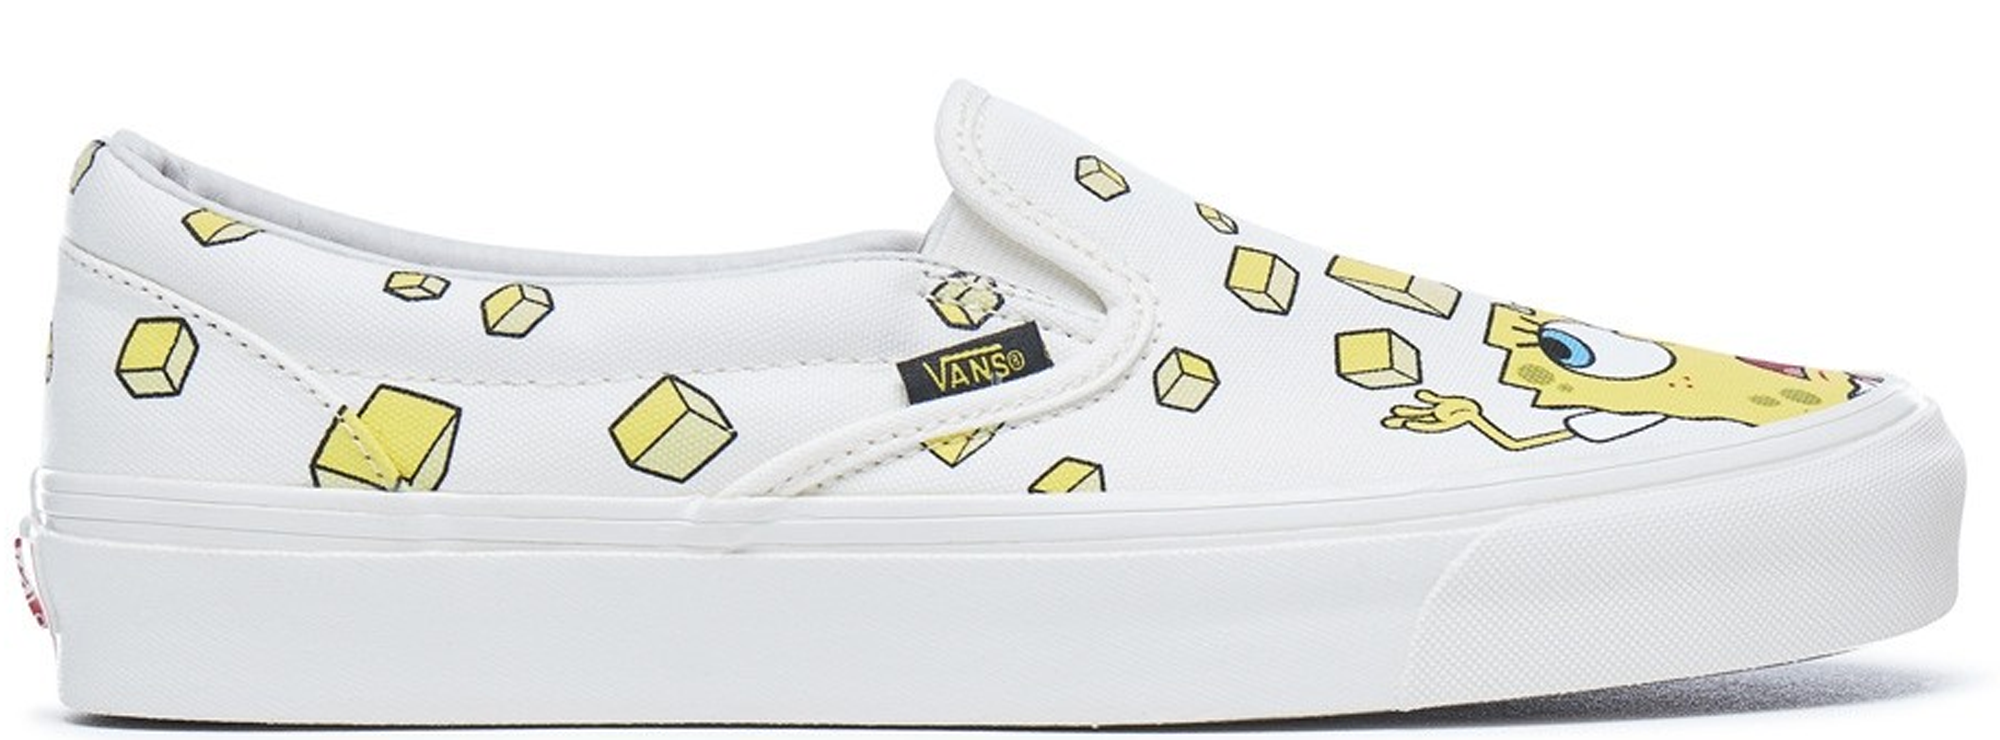 Slip-On Spongebob Yellow